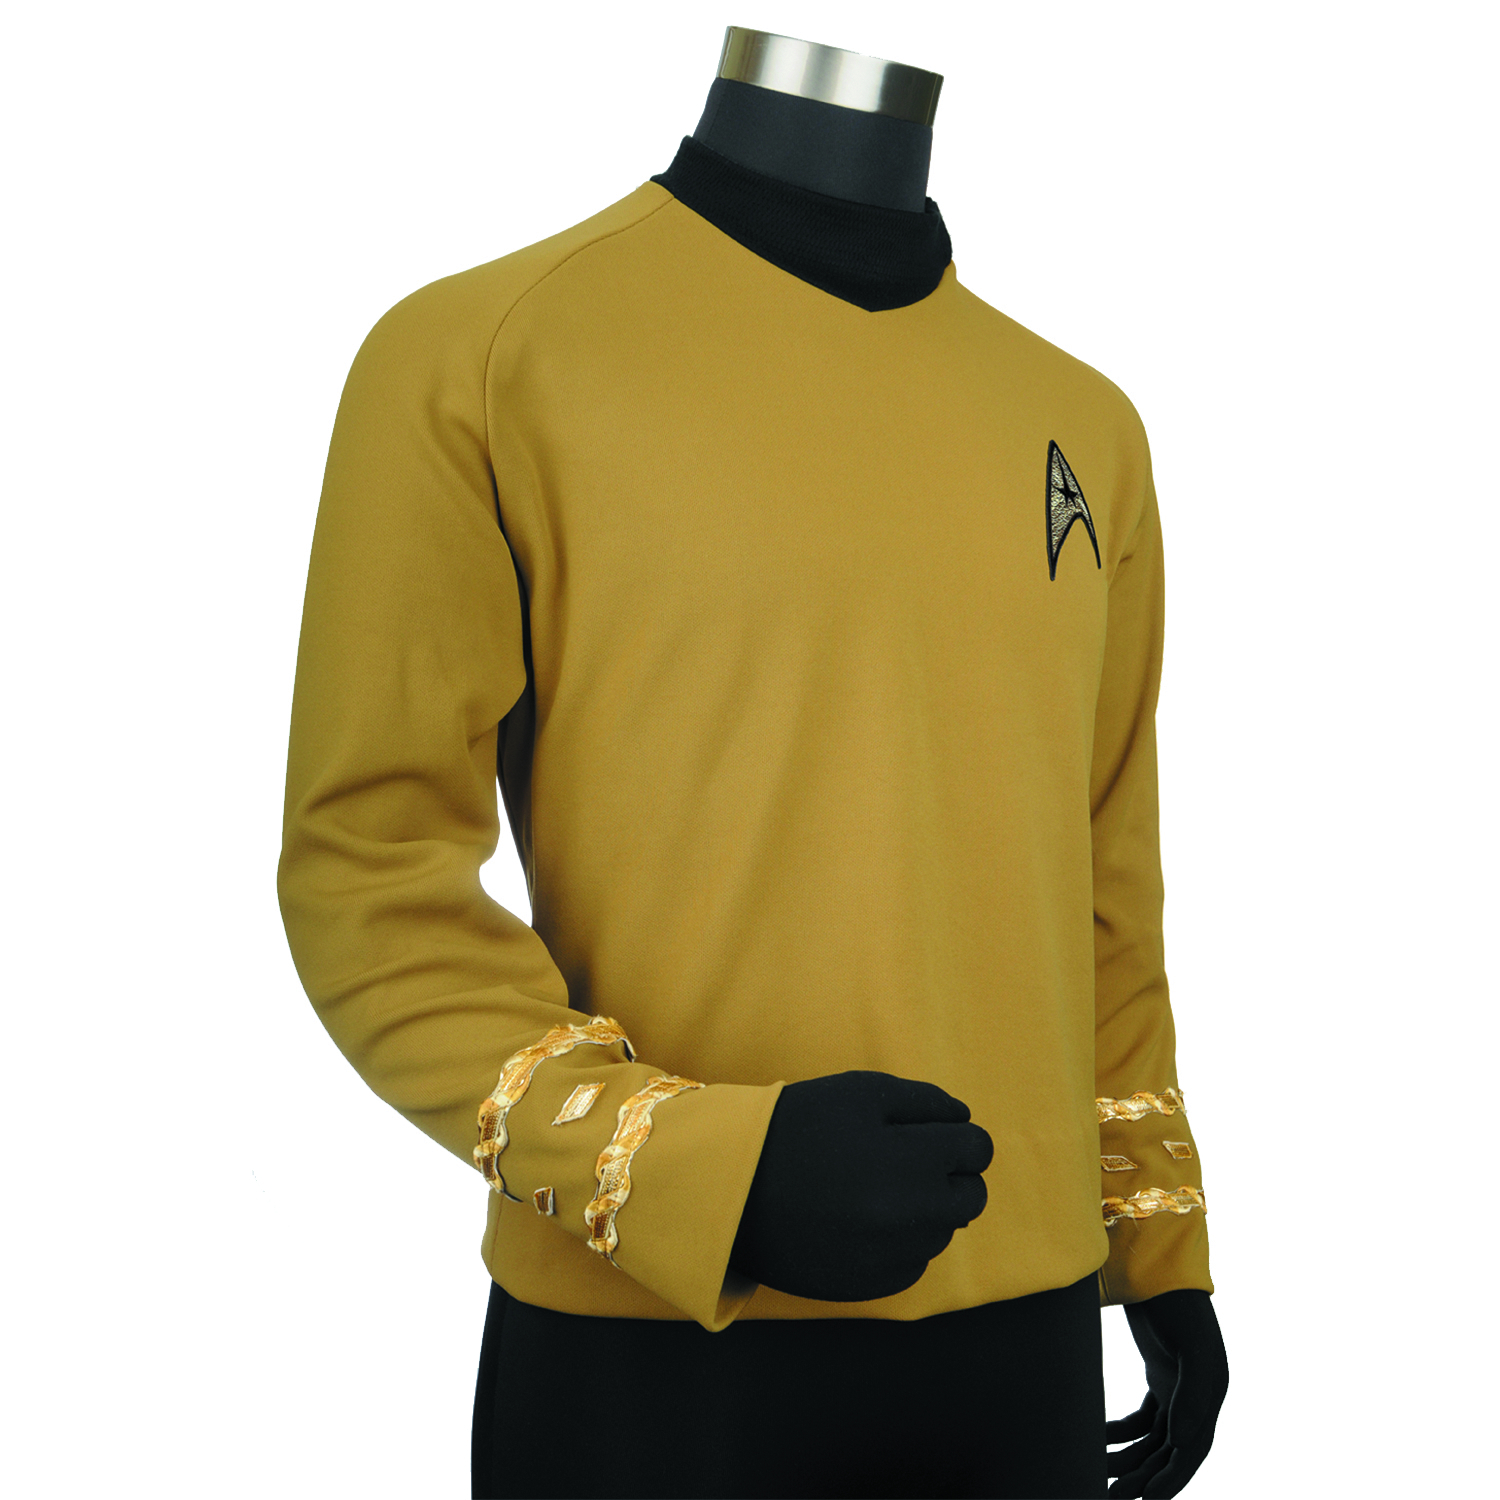 ST TOS CAPTAIN KIRK REPLICA TUNIC XL